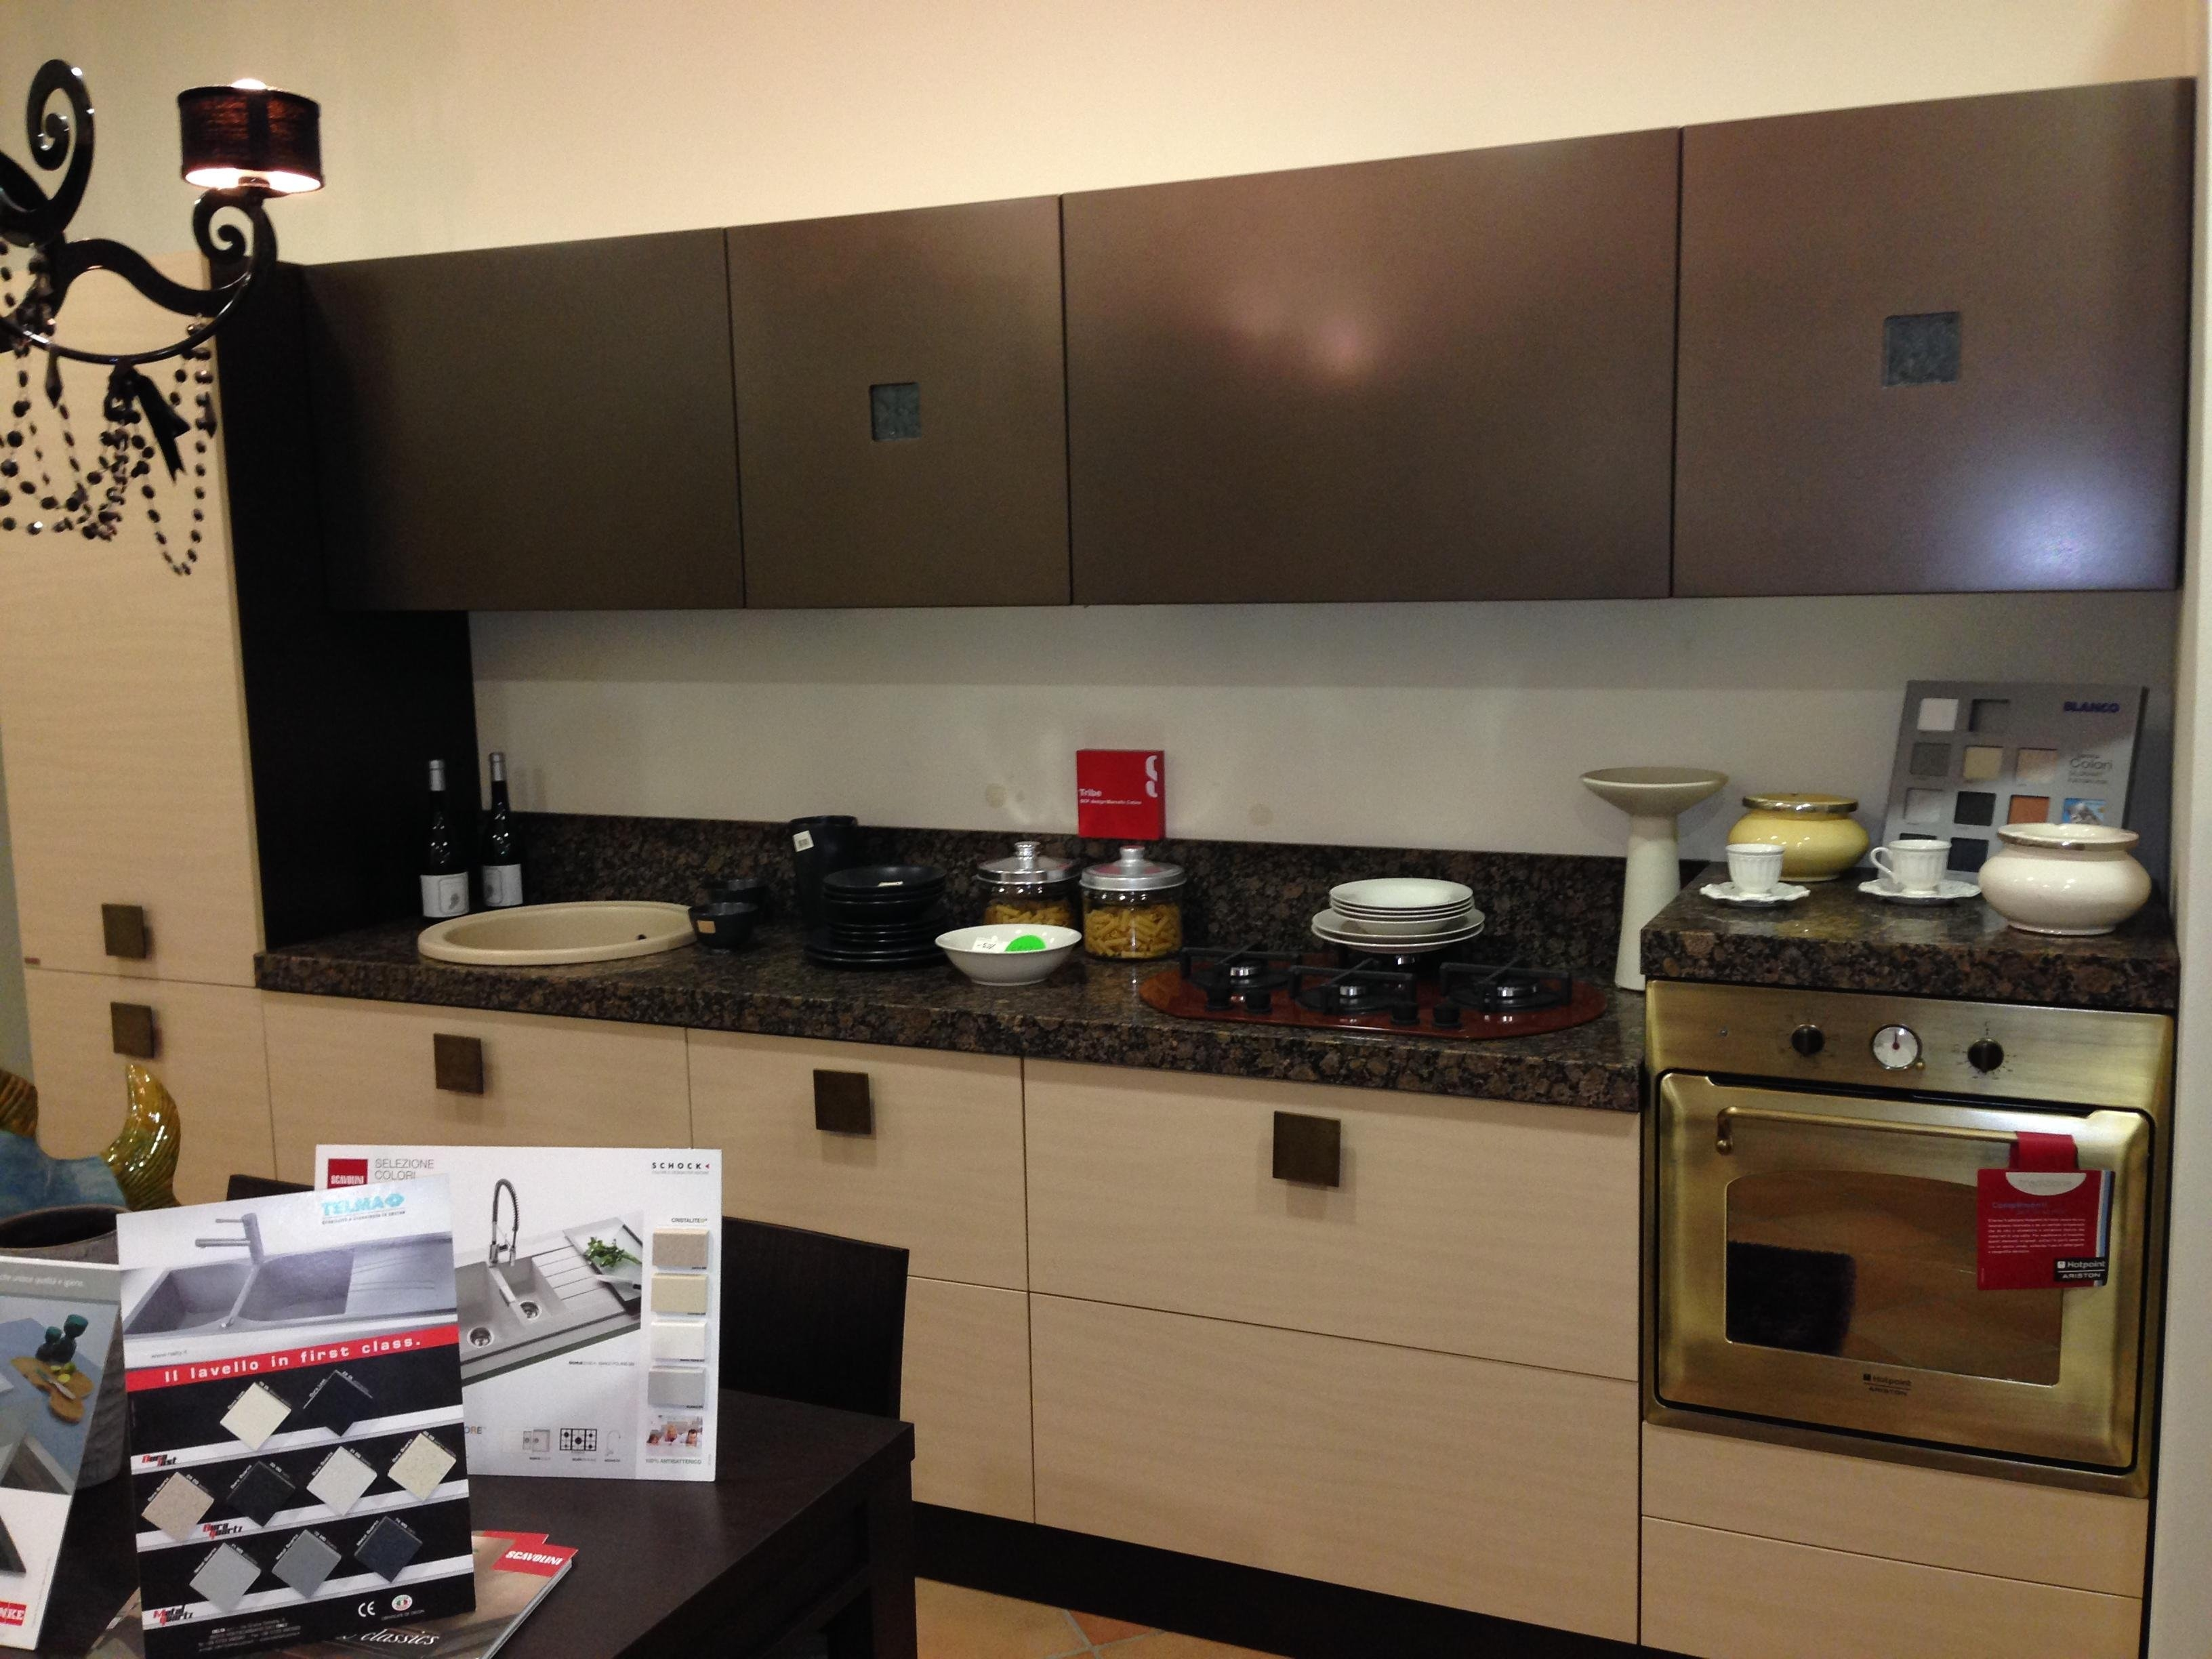 Awesome listino cucine scavolini images acrylicgiftware - Cucine famose marche ...